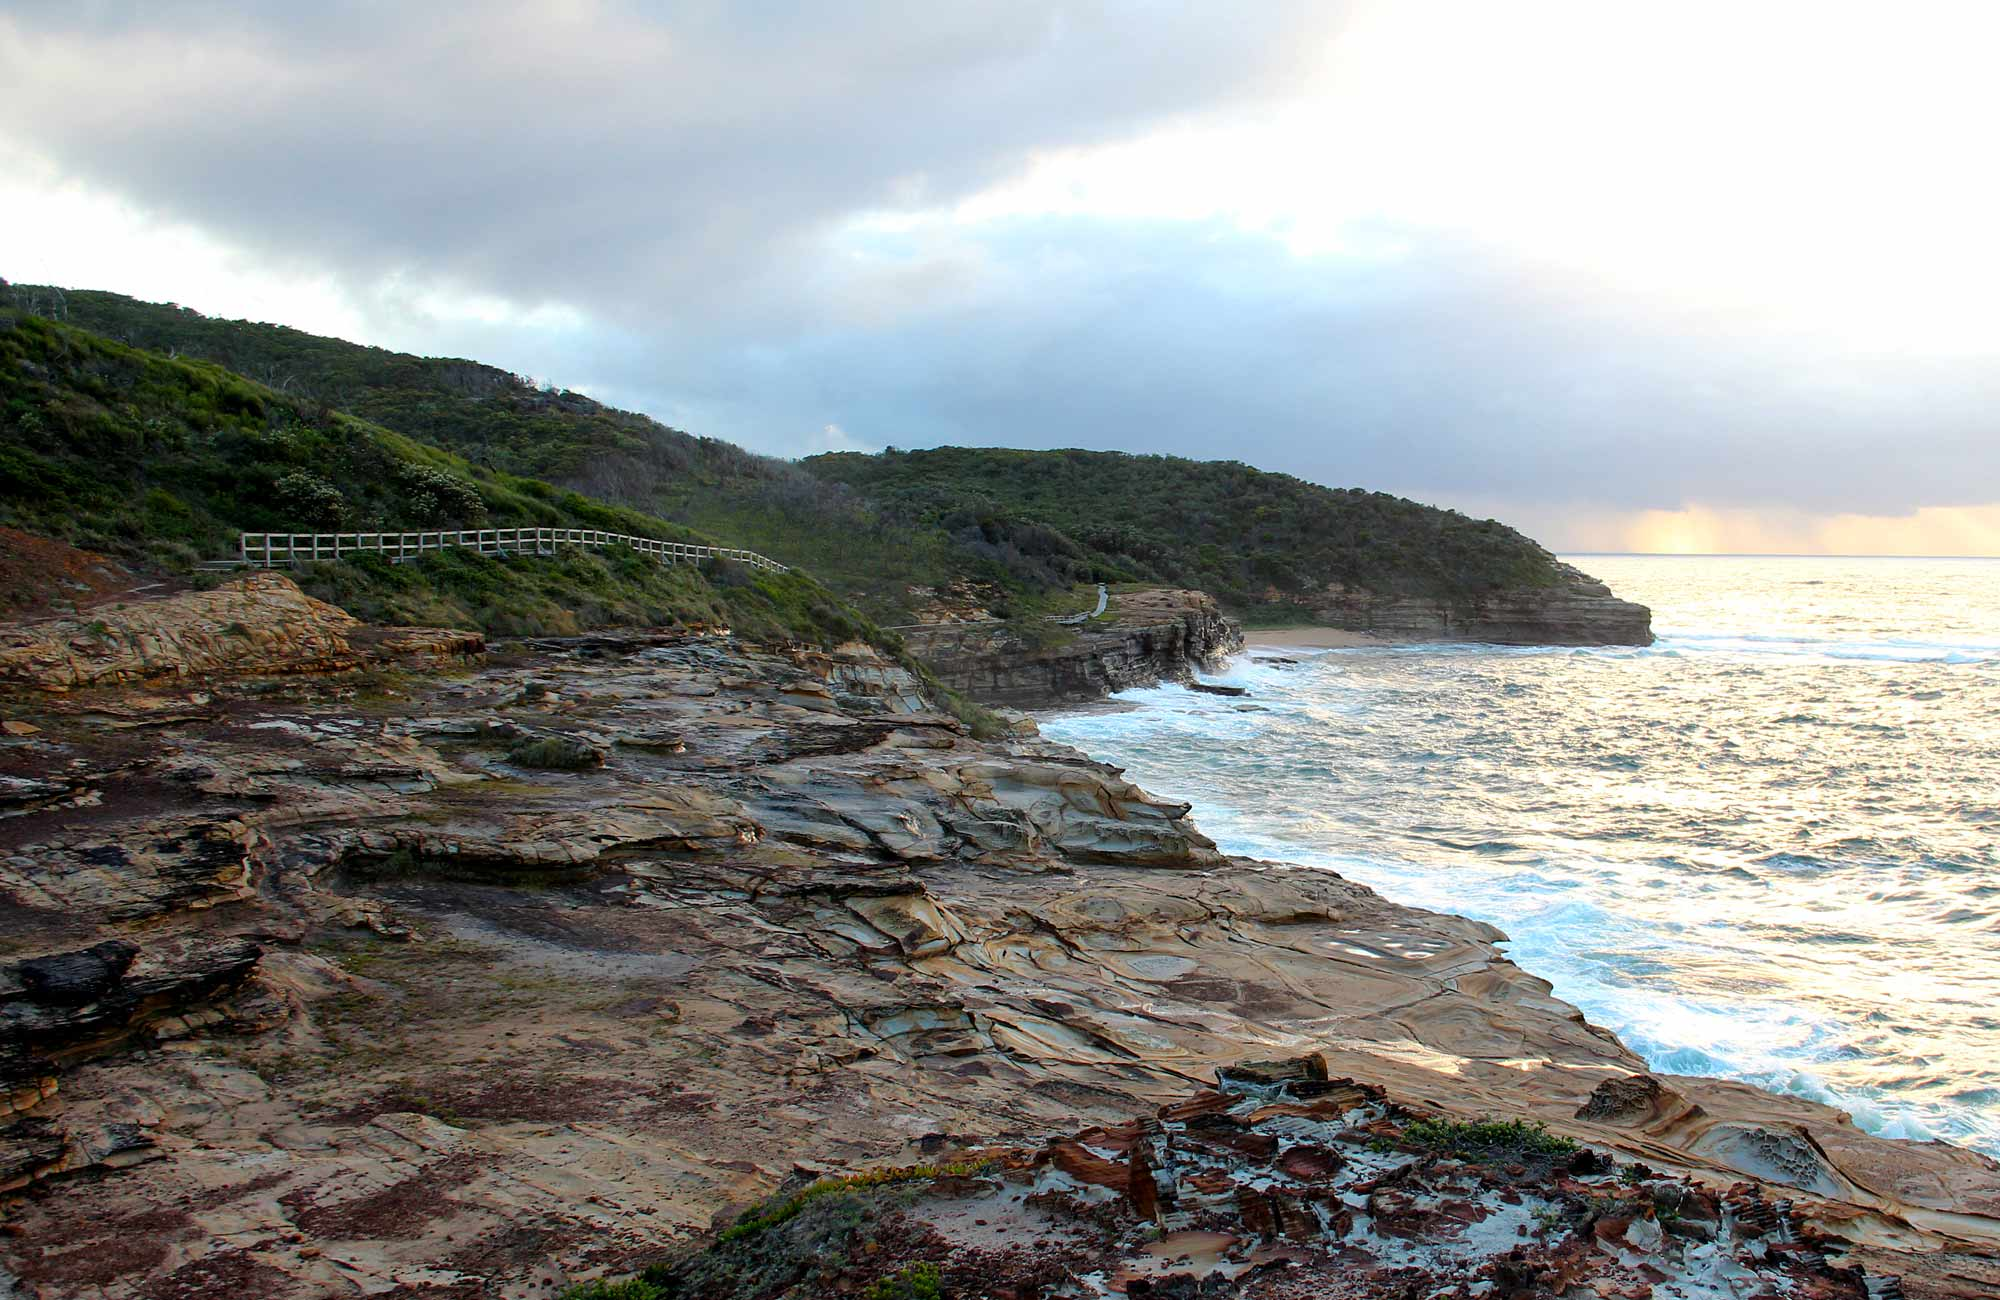 Looking along the rock coastline. Photo: John Yurasek